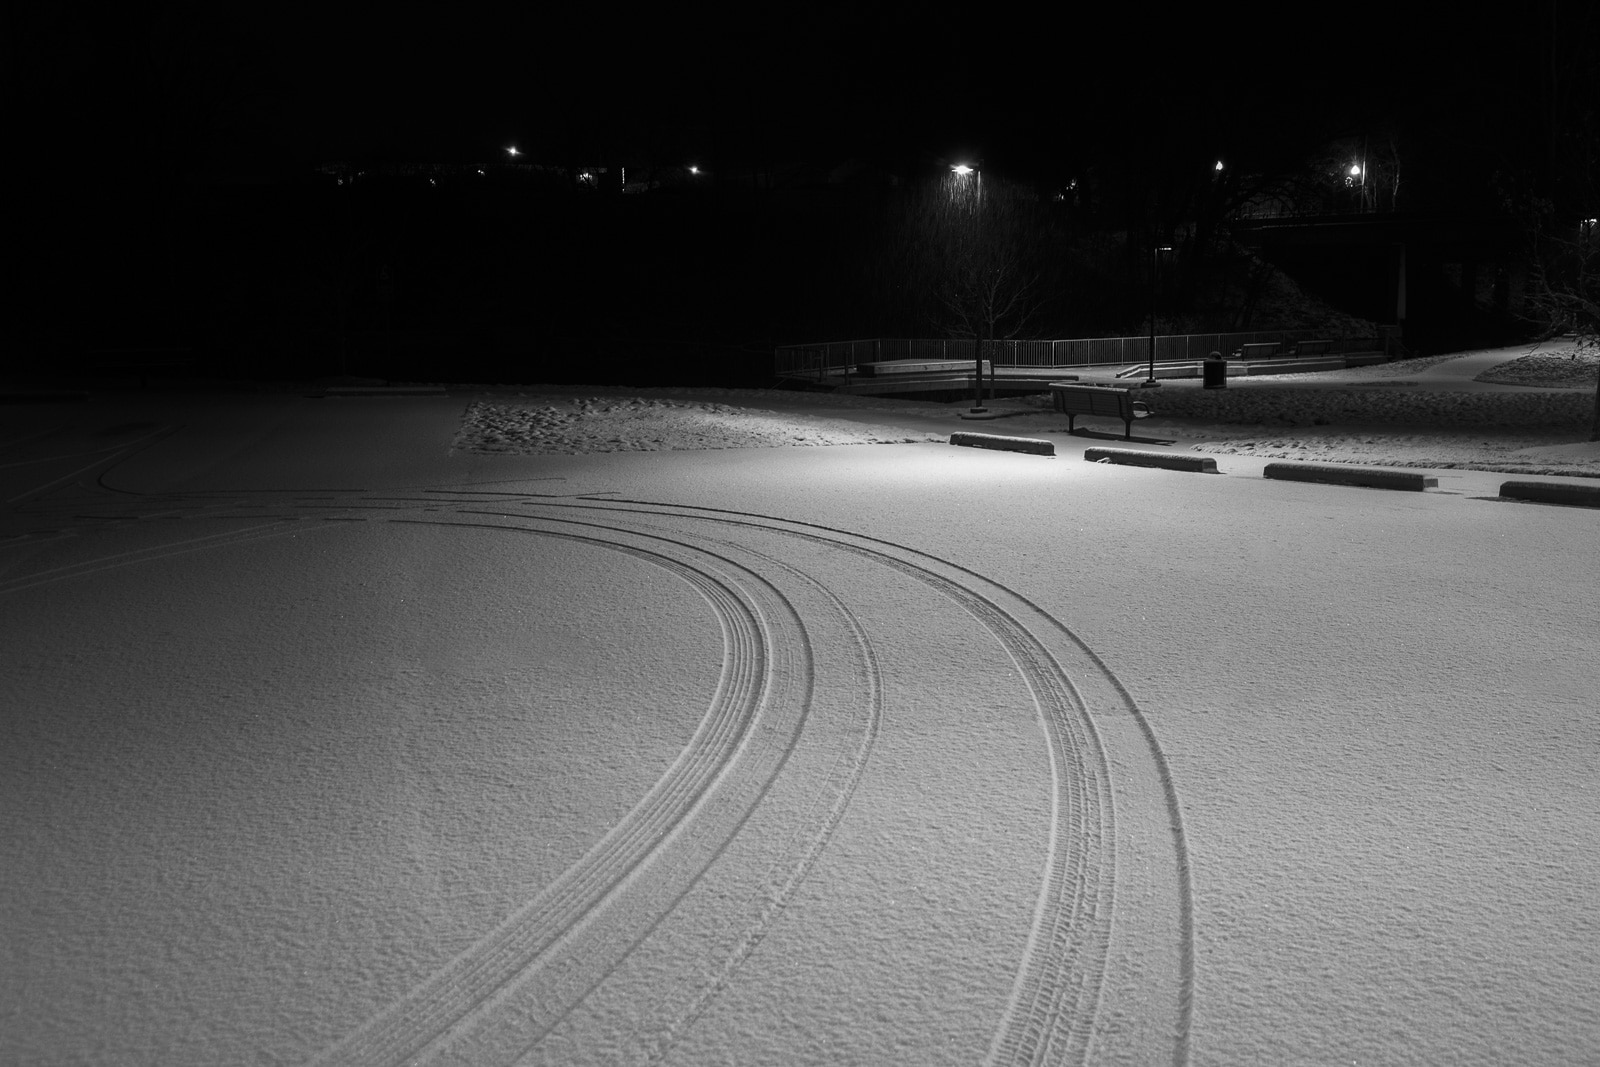 Tire tracks left by a teenage couple hiding in the darkness